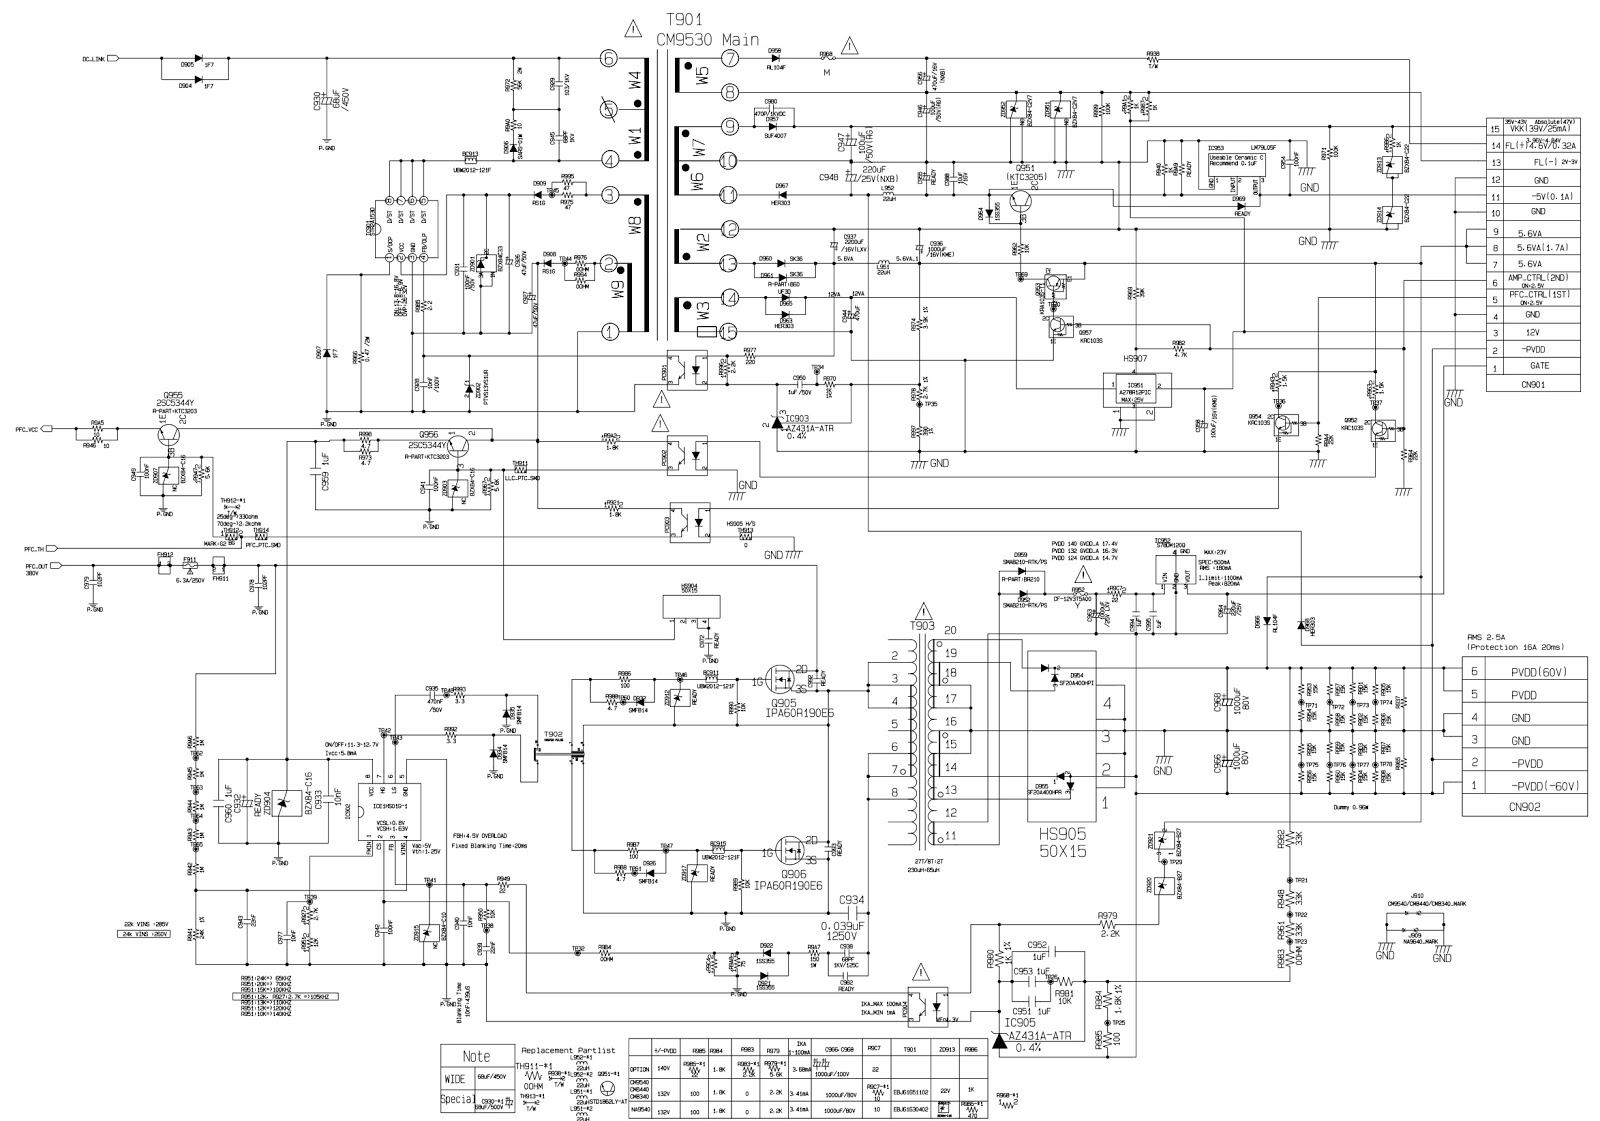 Lg Cm8340 Smps And Power Amplifier Circuit Diagram Software Update Amp Diagrams Cd Dsp Schematic